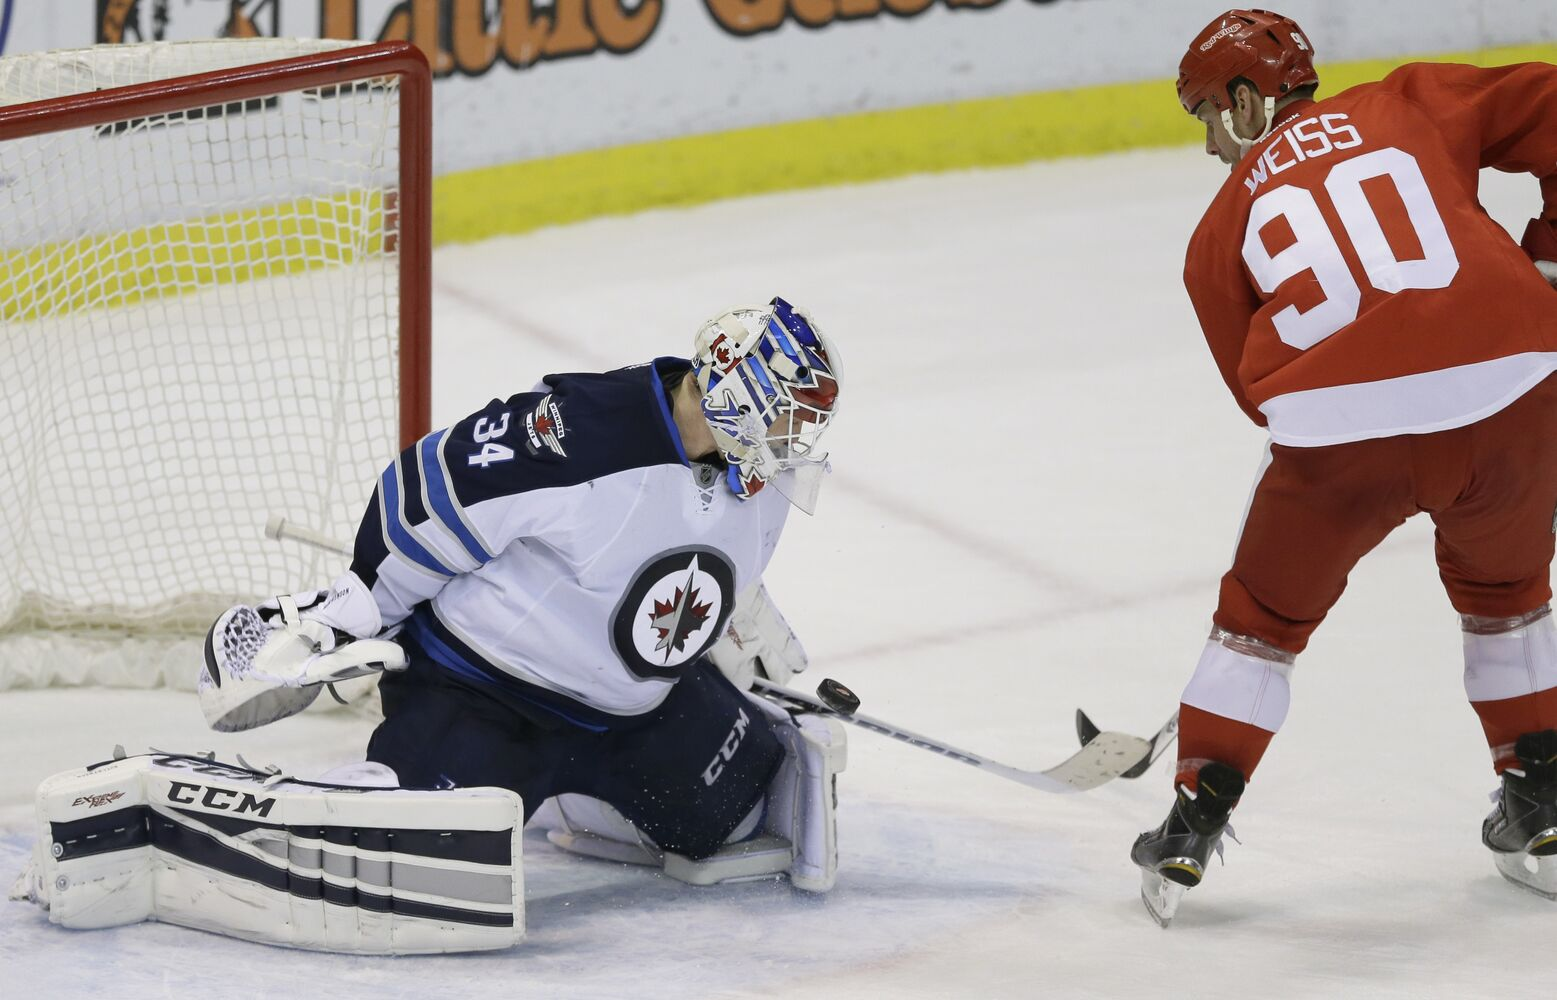 Jets goalie Michael Hutchinson stymies Red Wings centre Stephen Weiss during the shootout to clinch the win. (CP)